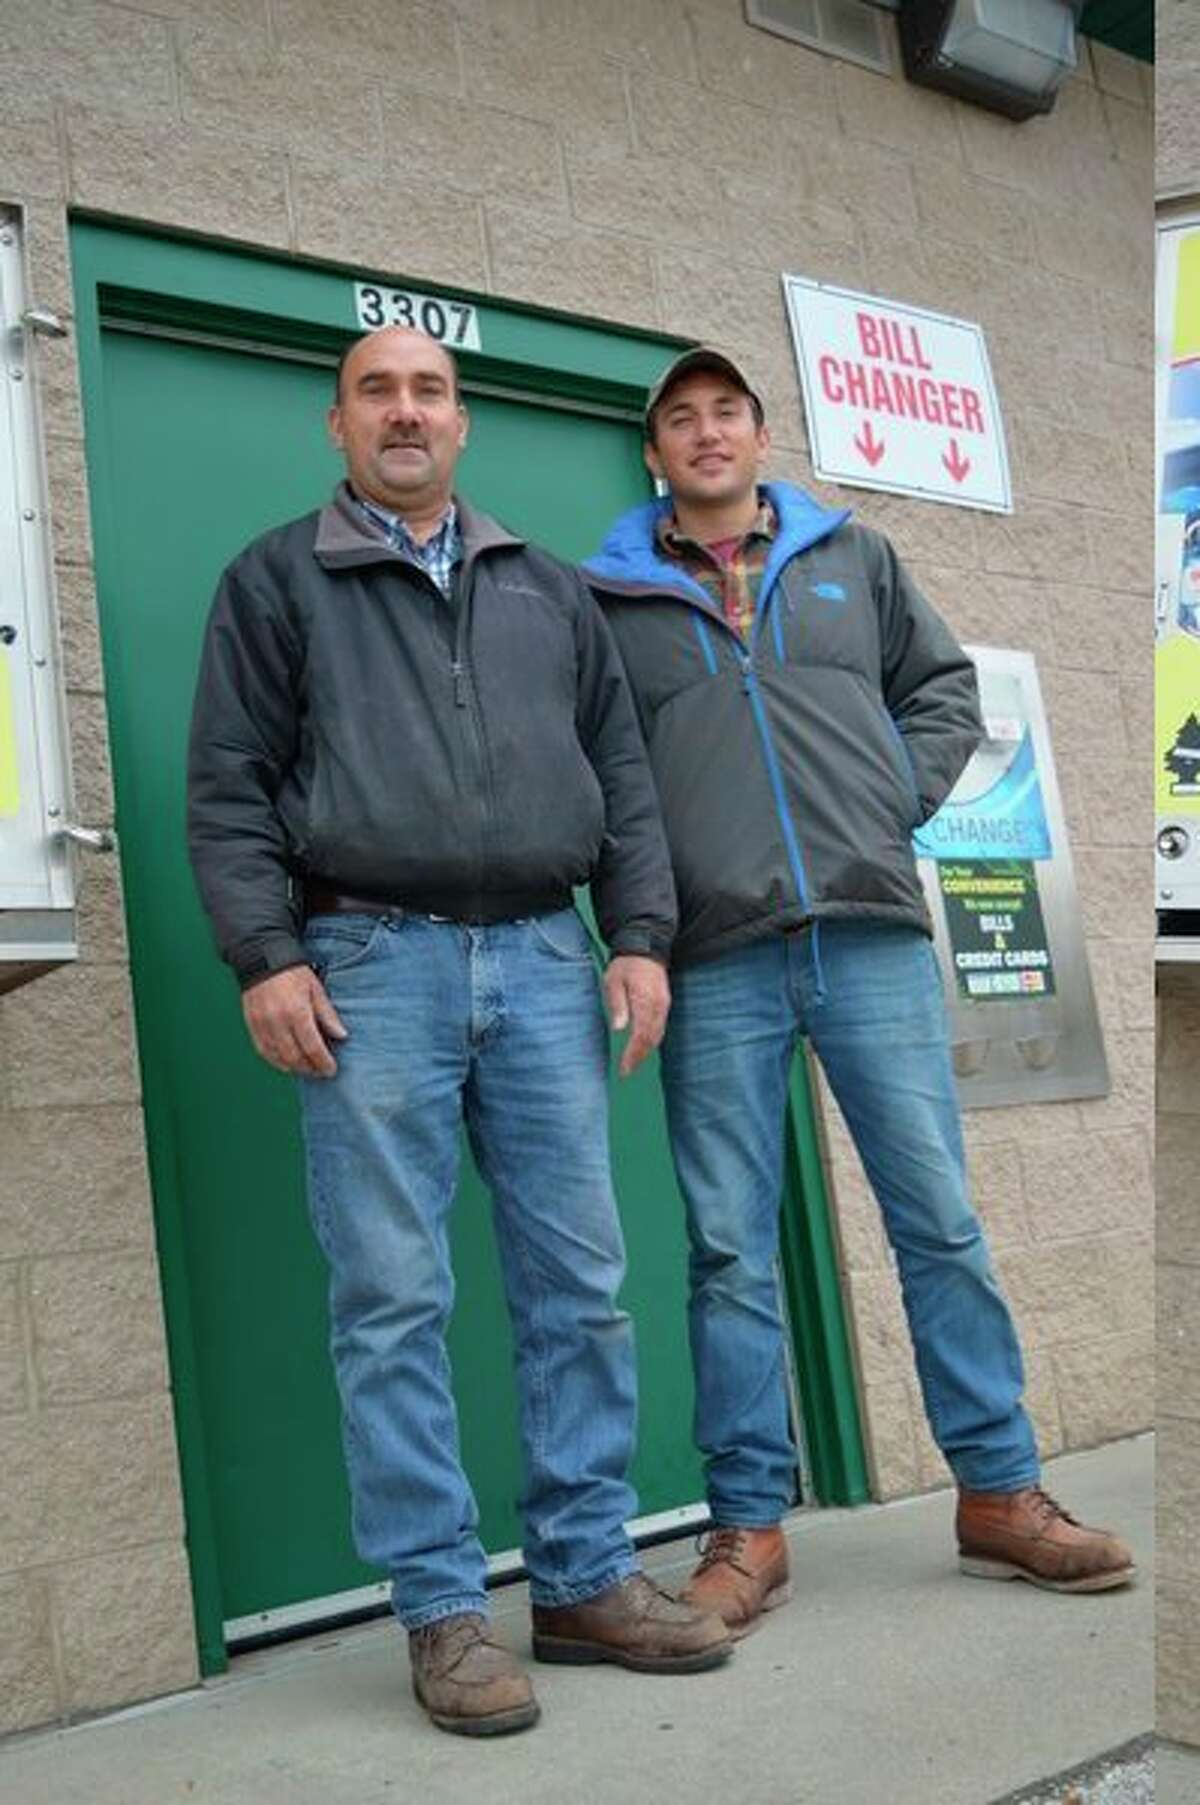 Randy Weiss and his son, Ryan stand outside of Splash-N-Dash Car Wash, located at 3307 Bay City Road in Midland. (Photo by Emily Davis)